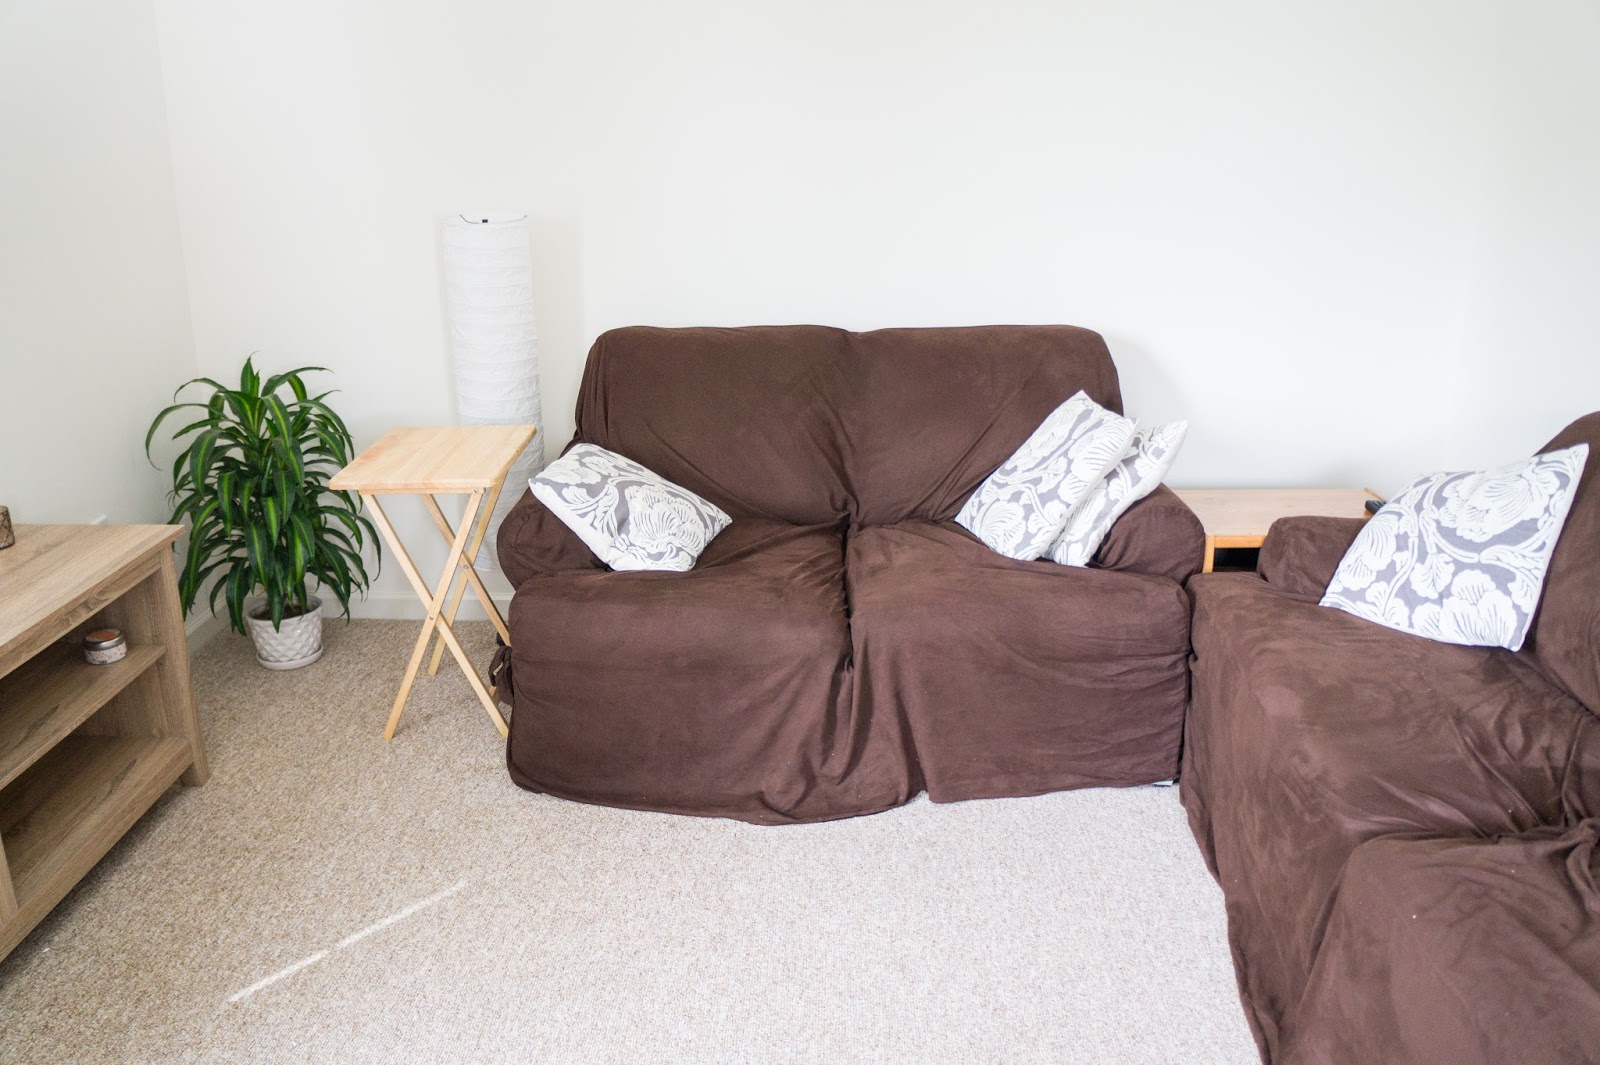 Couch with pillows, an end table, lamp, and a plant in the corner.